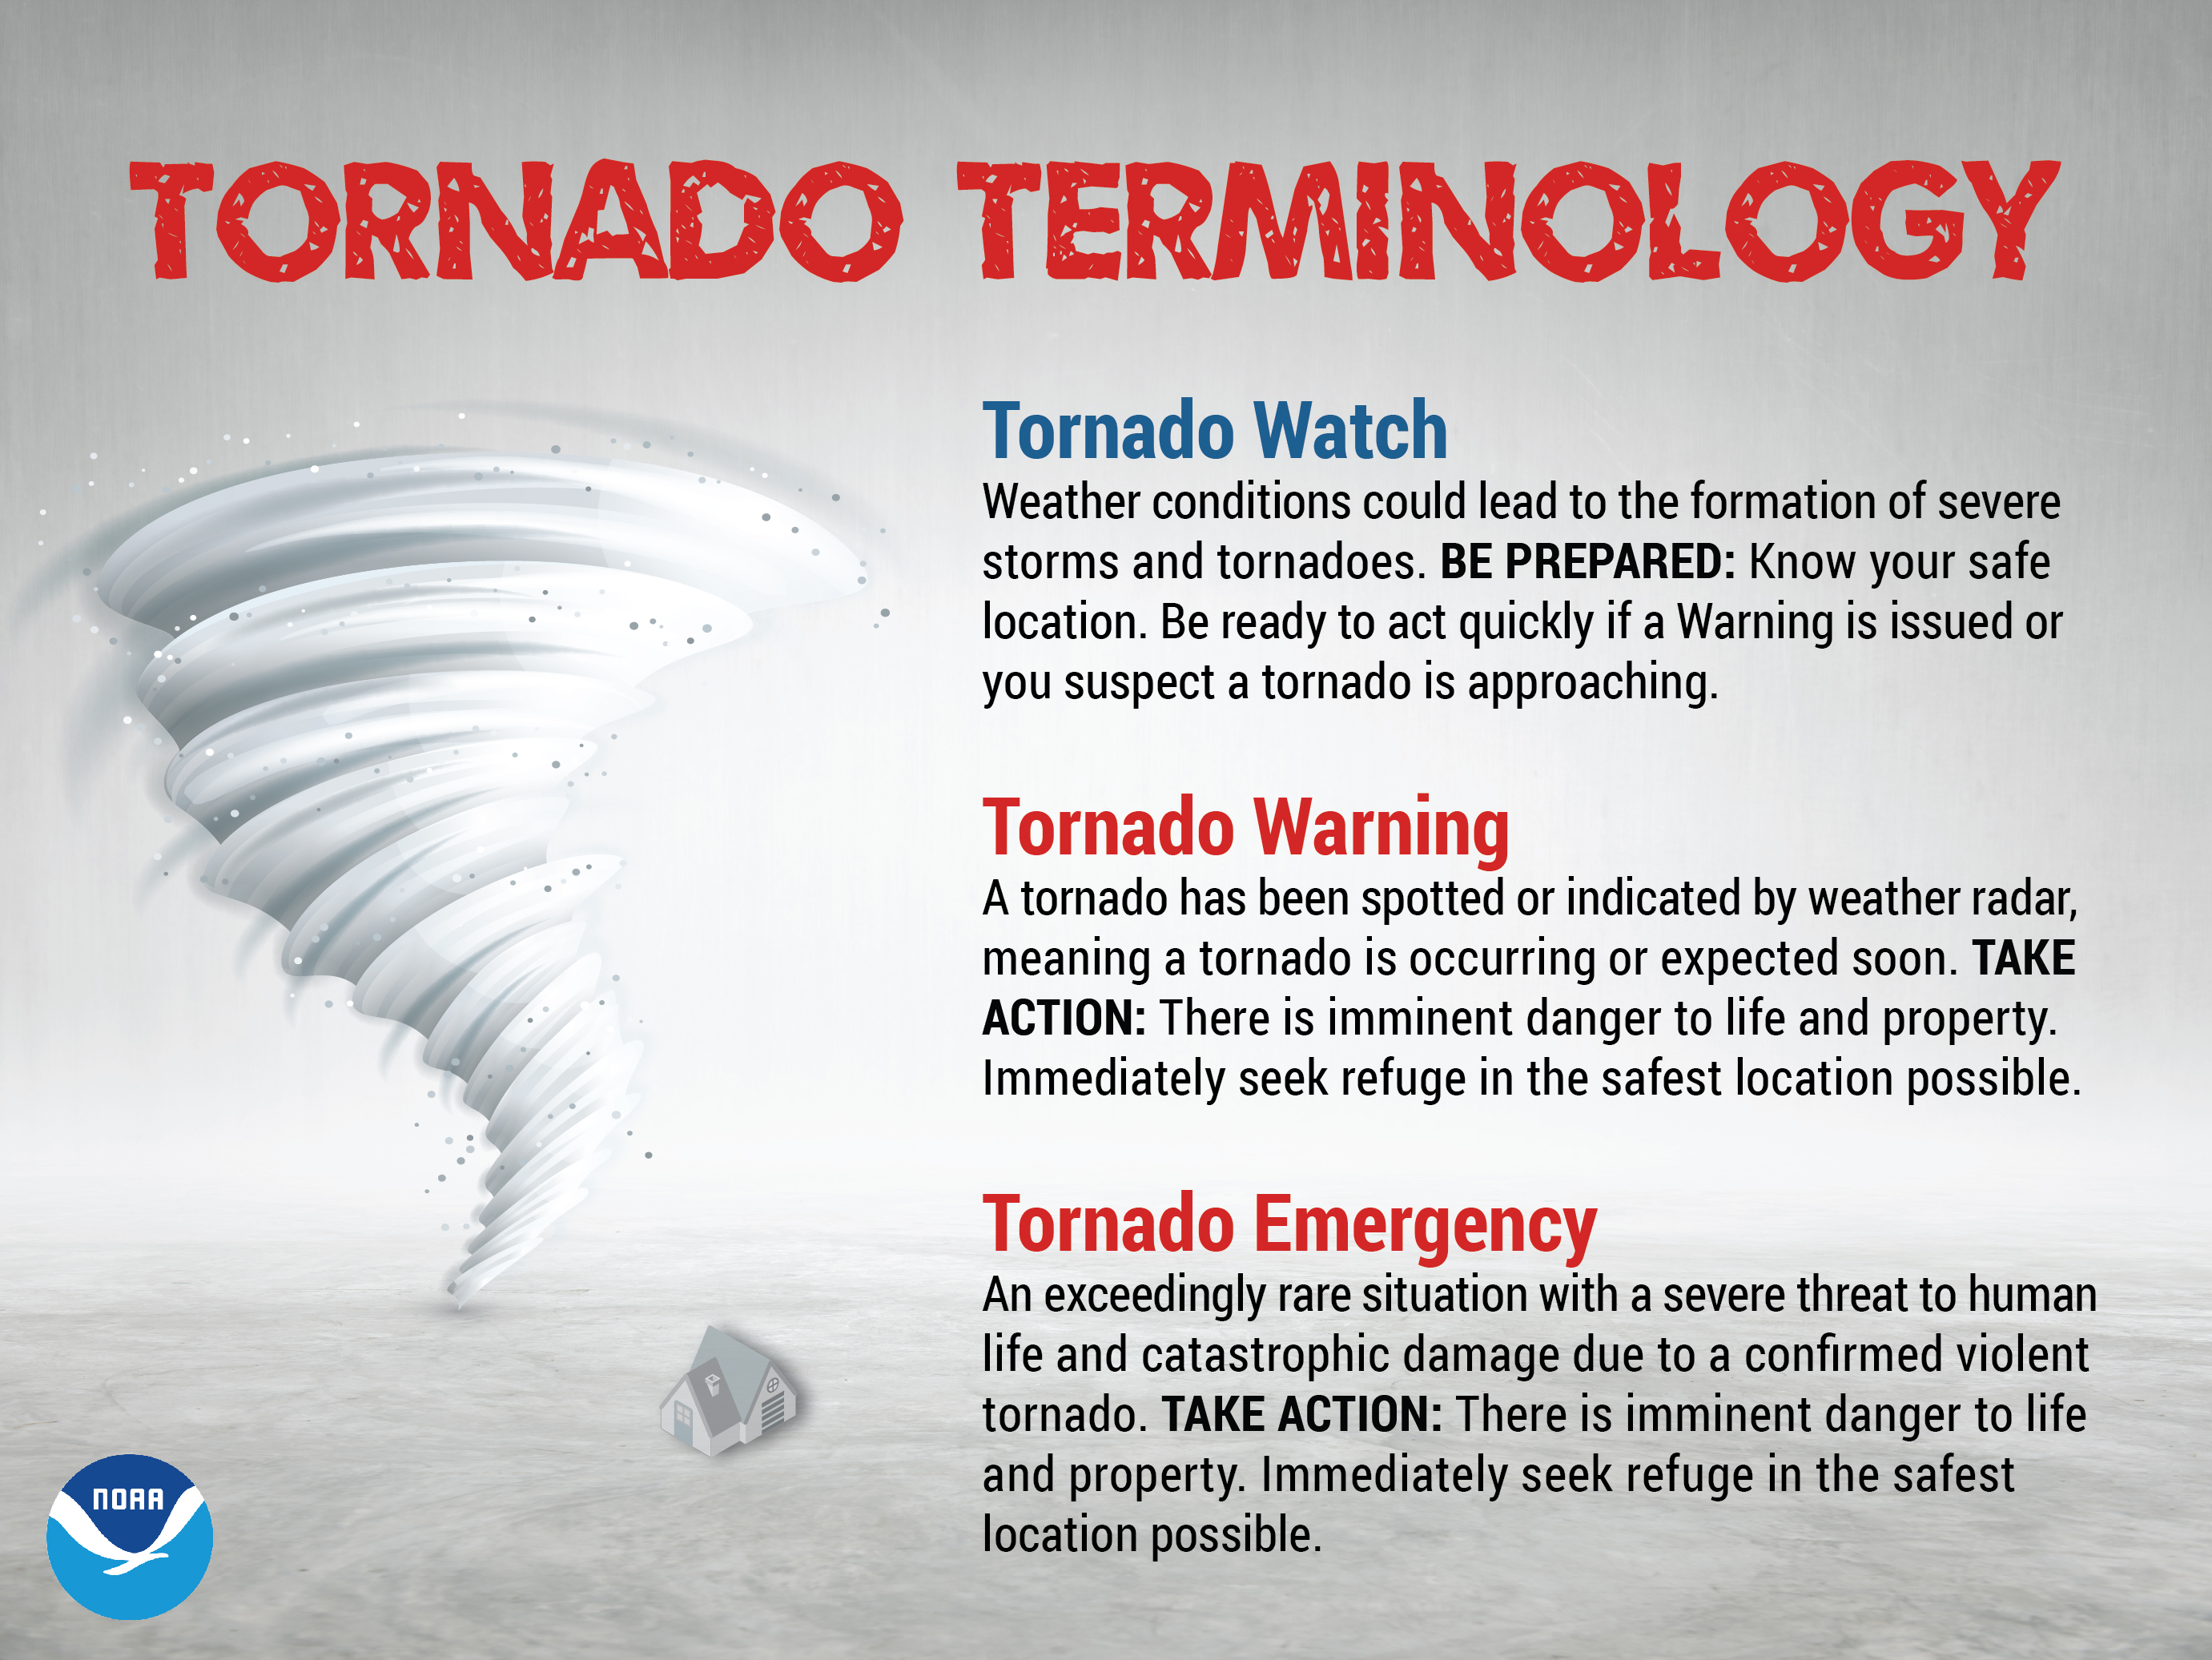 TORNADO TERMINOLOGY 1) Tornado Watch: Weather conditions could lead to the formation of severe storms and tornadoes. Be prepared! Know your safe location. Be ready to act quickly if a Warning is issued or you suspect a tornado is approaching. 2) Tornado Warning: A tornado has been spotted or indicated by weather radar, meaning a tornado is occurring or expected soon. Take Action! There is imminent danger to life and property. Immediately seek refuge in the safest location possible. 3) Tornado Emergency: An exceeding rare situation with a severe threat to human life and catastrophic damage due to a confirmed violent tornado. Take Action! Immediately seek refuge in the safest location possible.